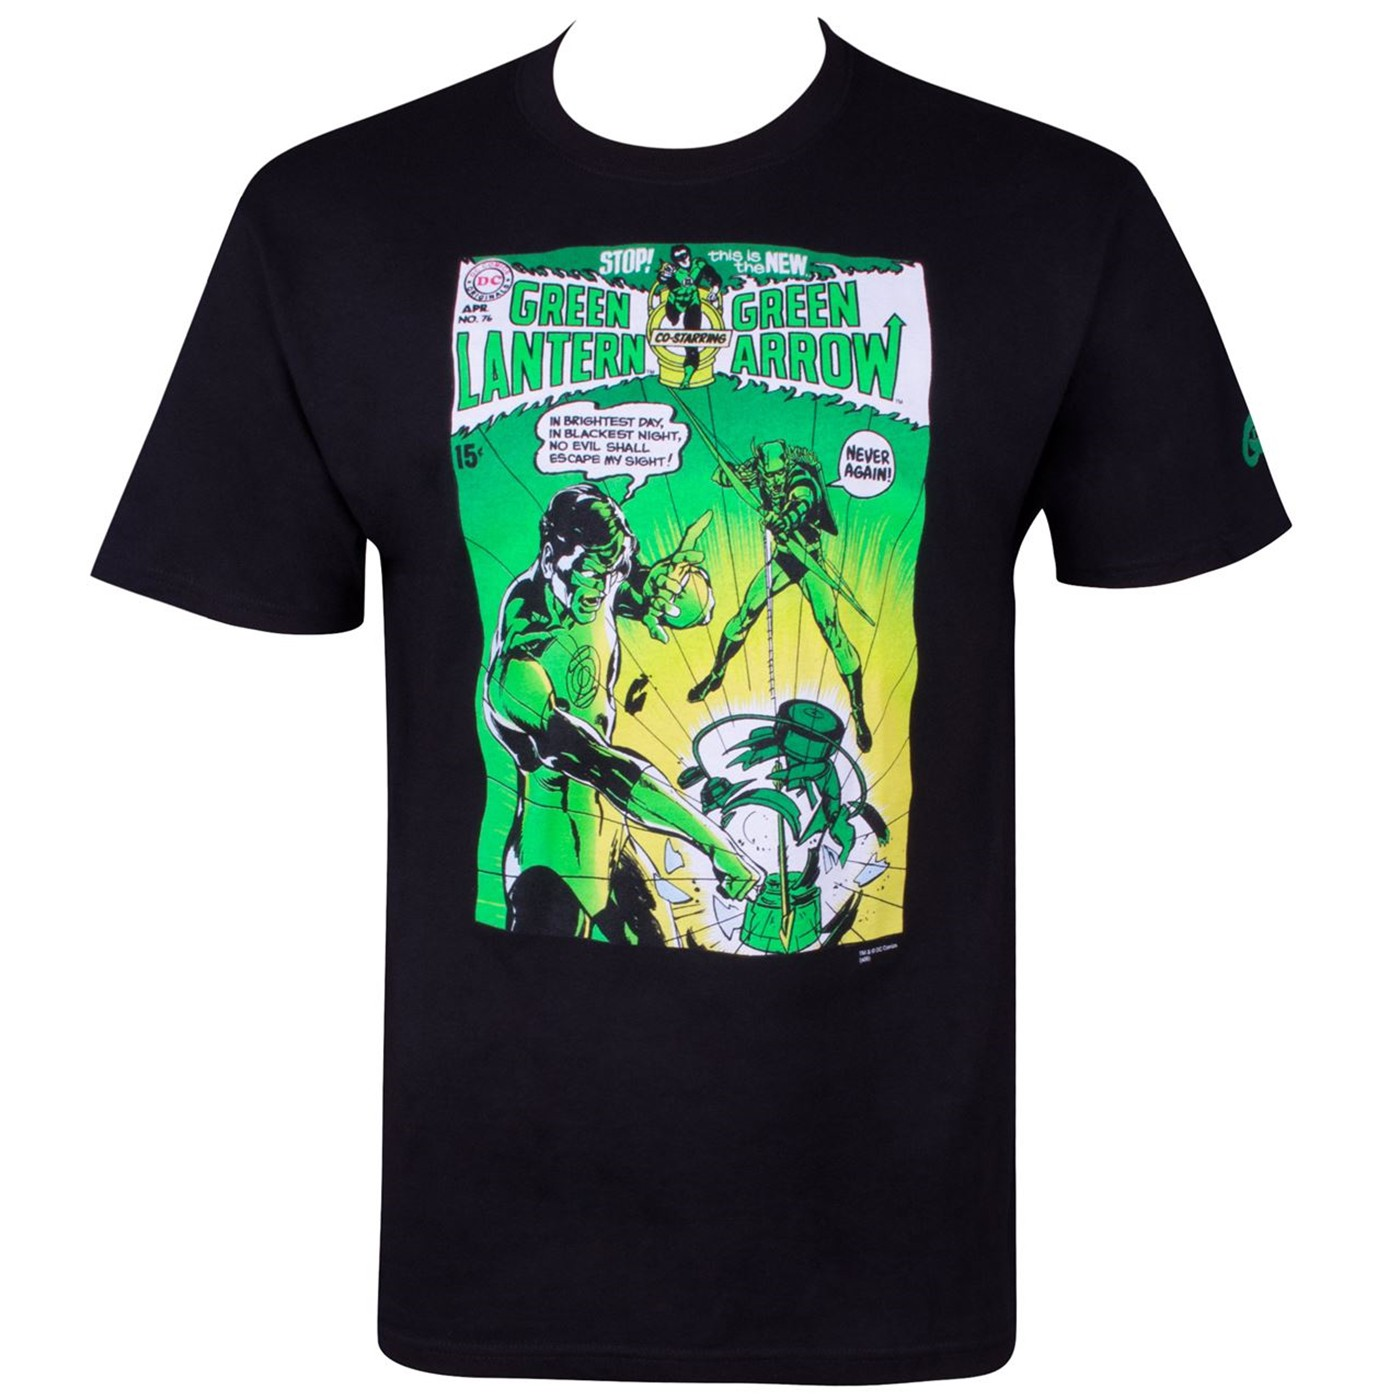 Green Lantern and Green Arrow #76 Comic by Neal Adams Men's T-Shirt